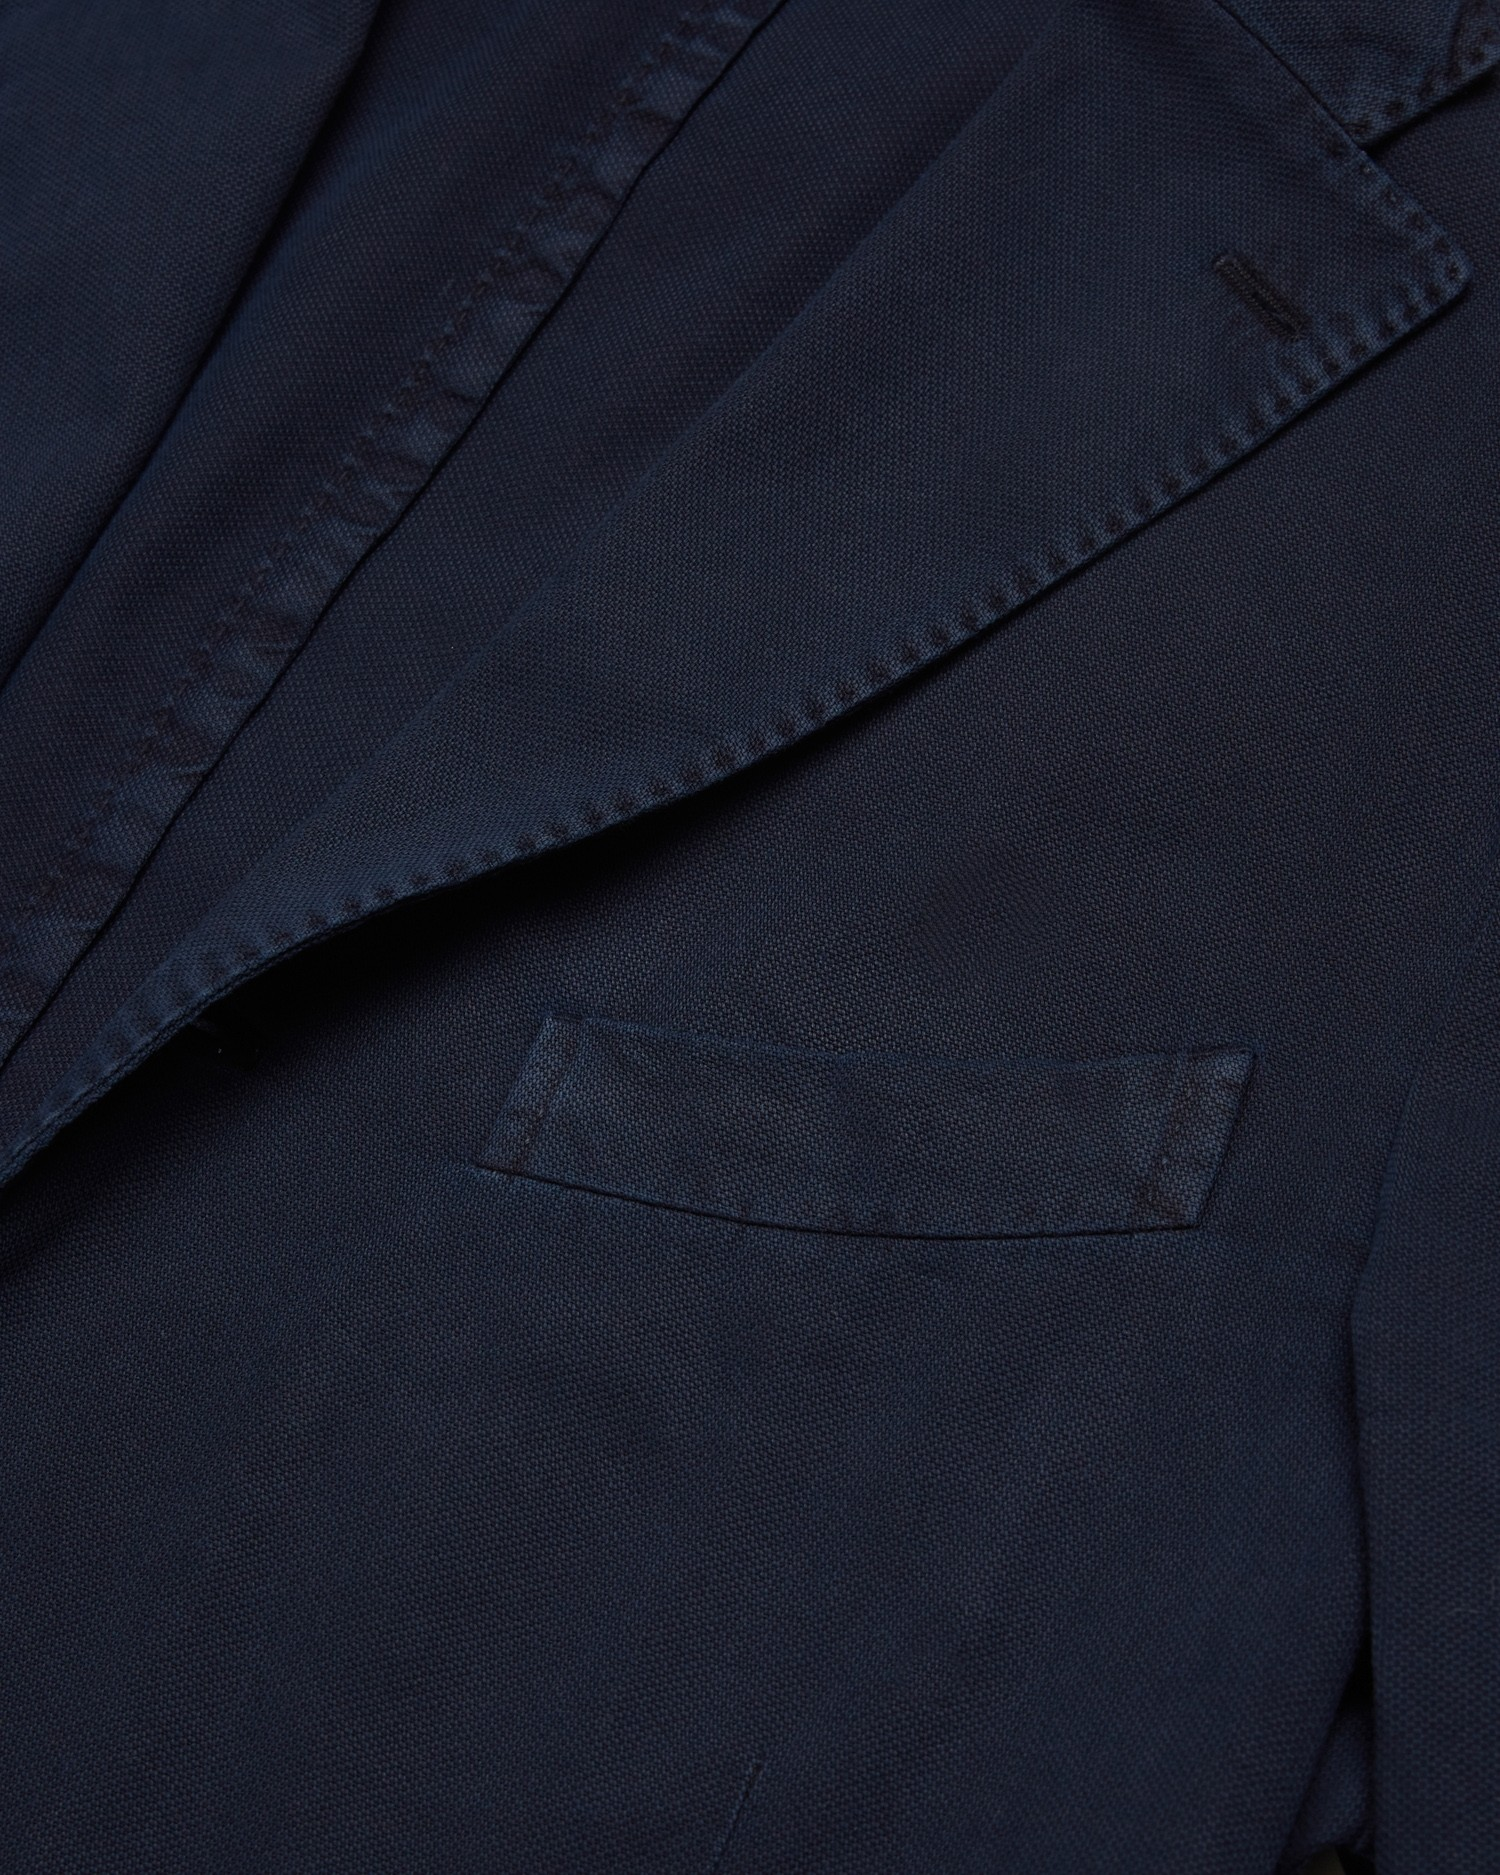 boglioli_garment_dyed_cotton_jacket_navy_4.jpg